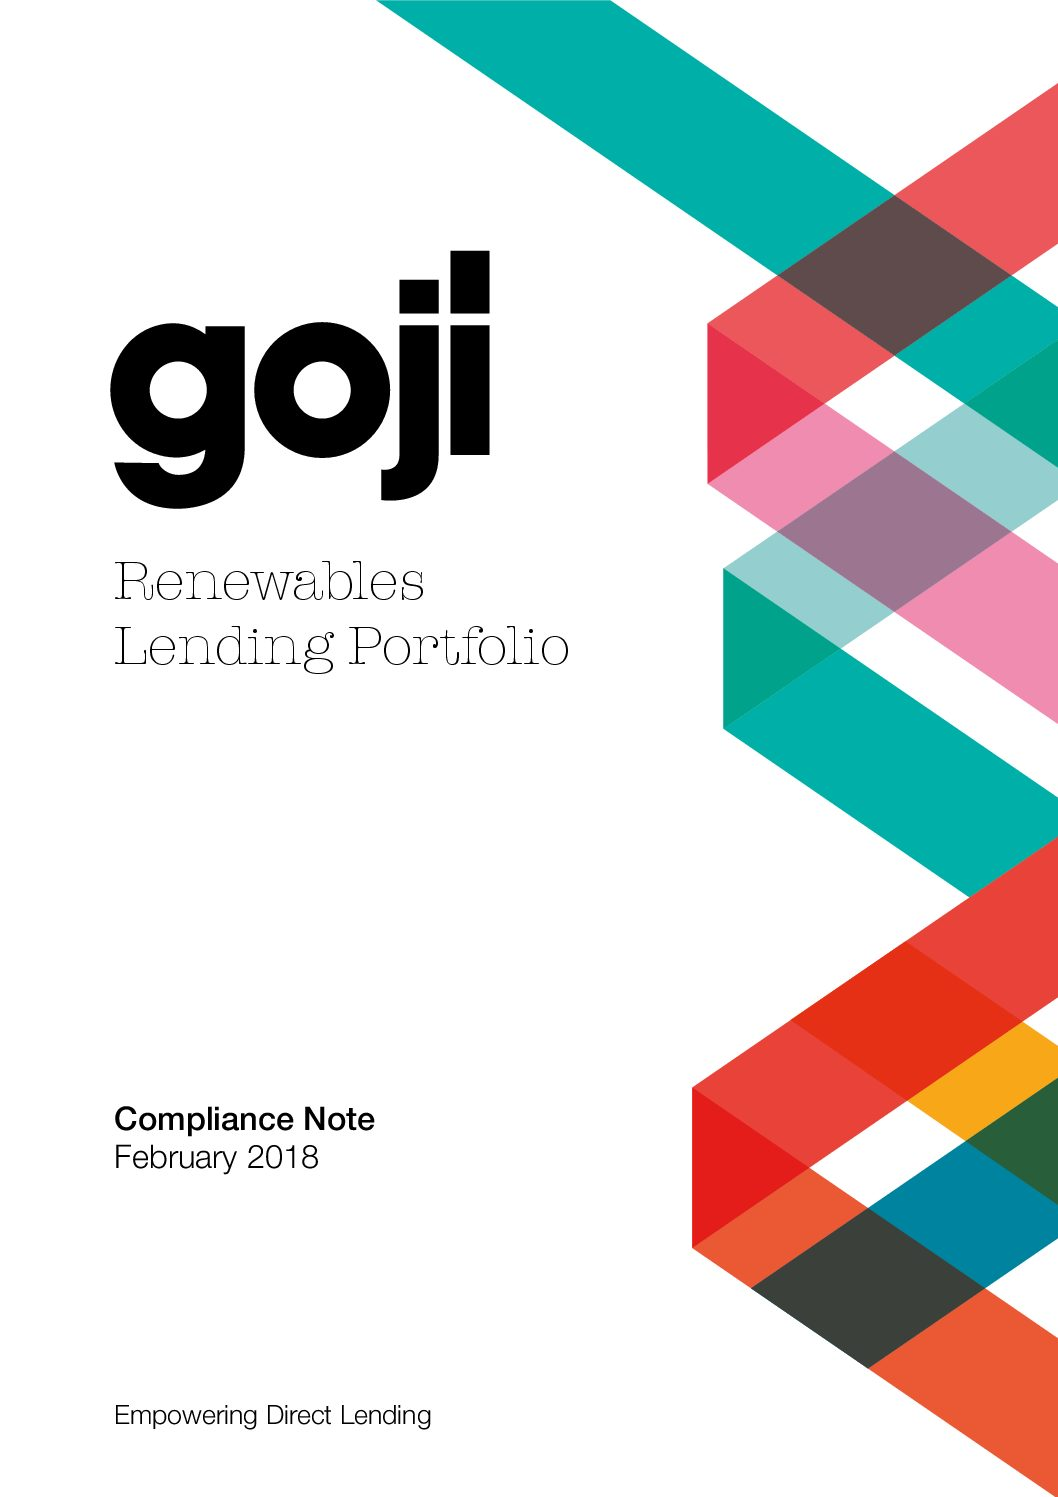 Renewables Lending Portfolio compliance note-Goji Direct Lending Investment Experts